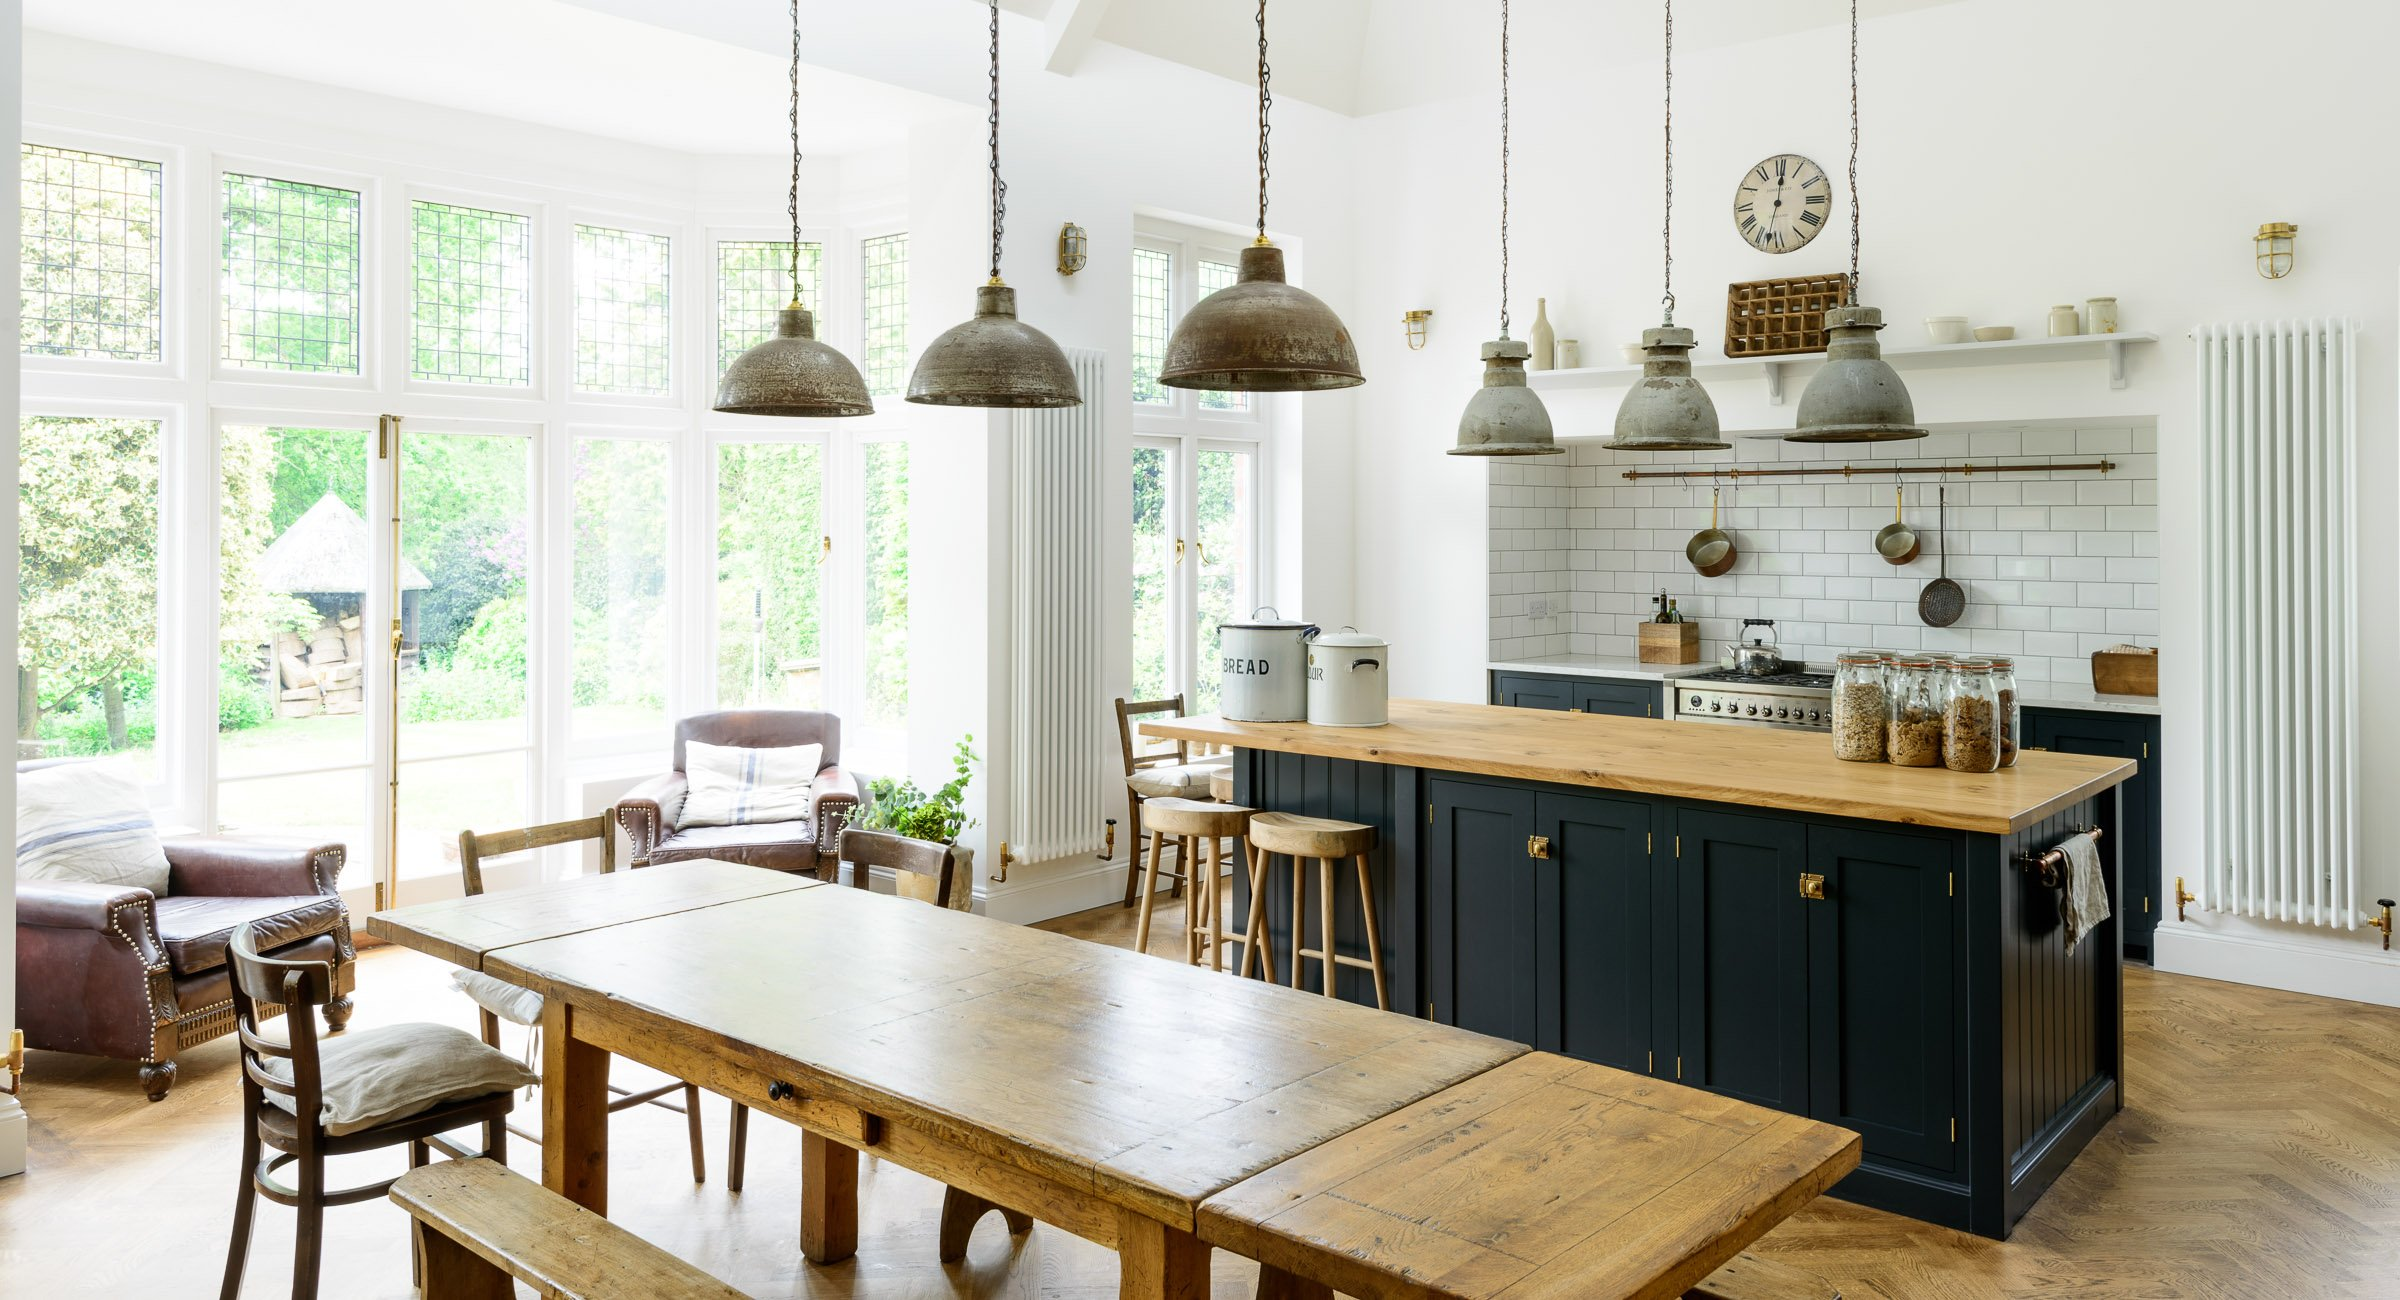 10 Modern Rustic Decor Ideas - These Modern Rustic Rooms ...